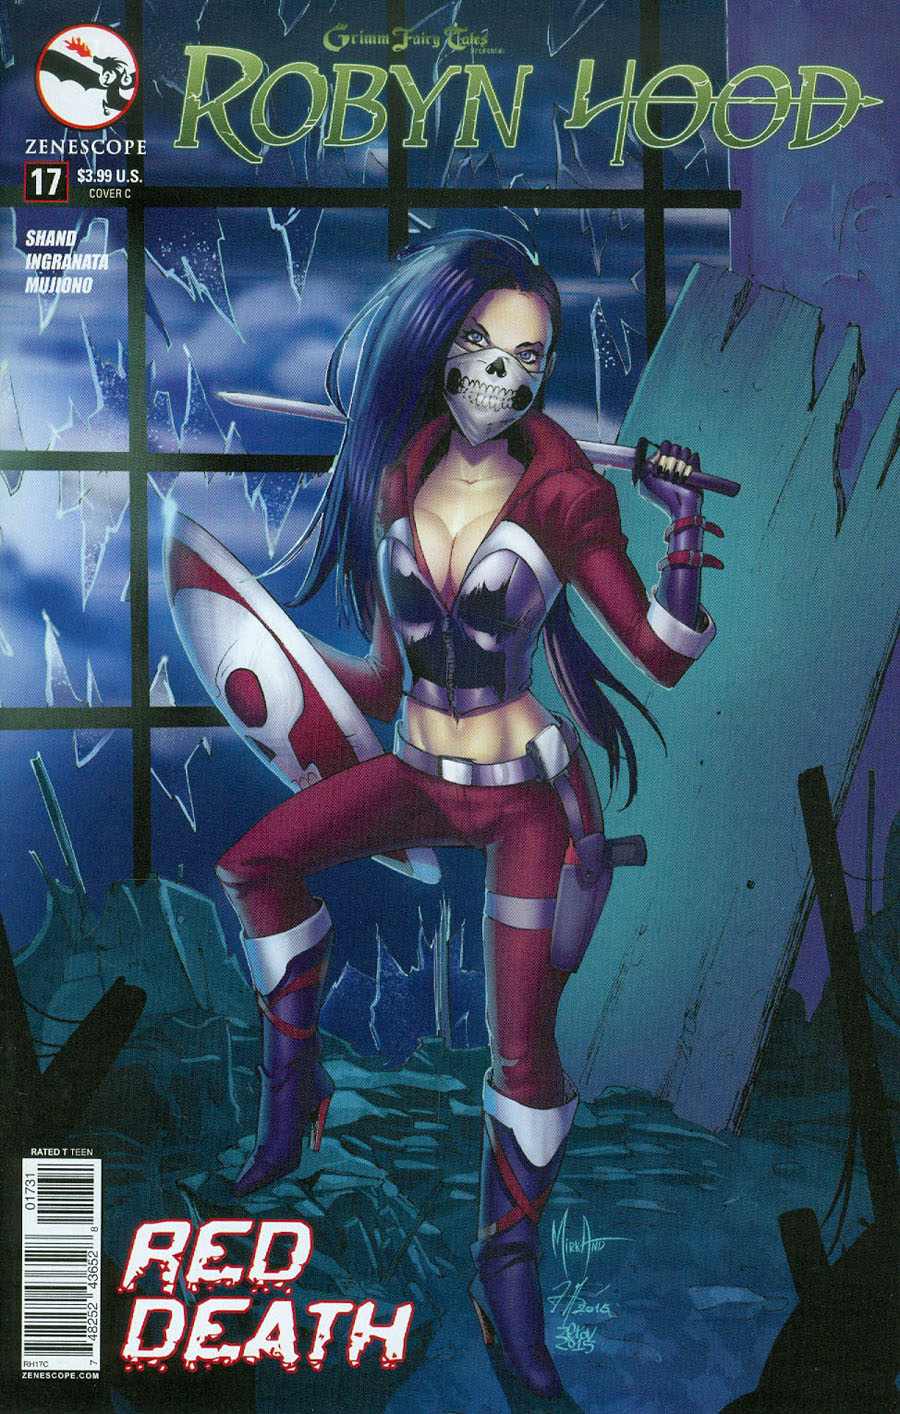 Grimm Fairy Tales Presents Robyn Hood Vol 2 #17 Cover C Mirka Andolfo